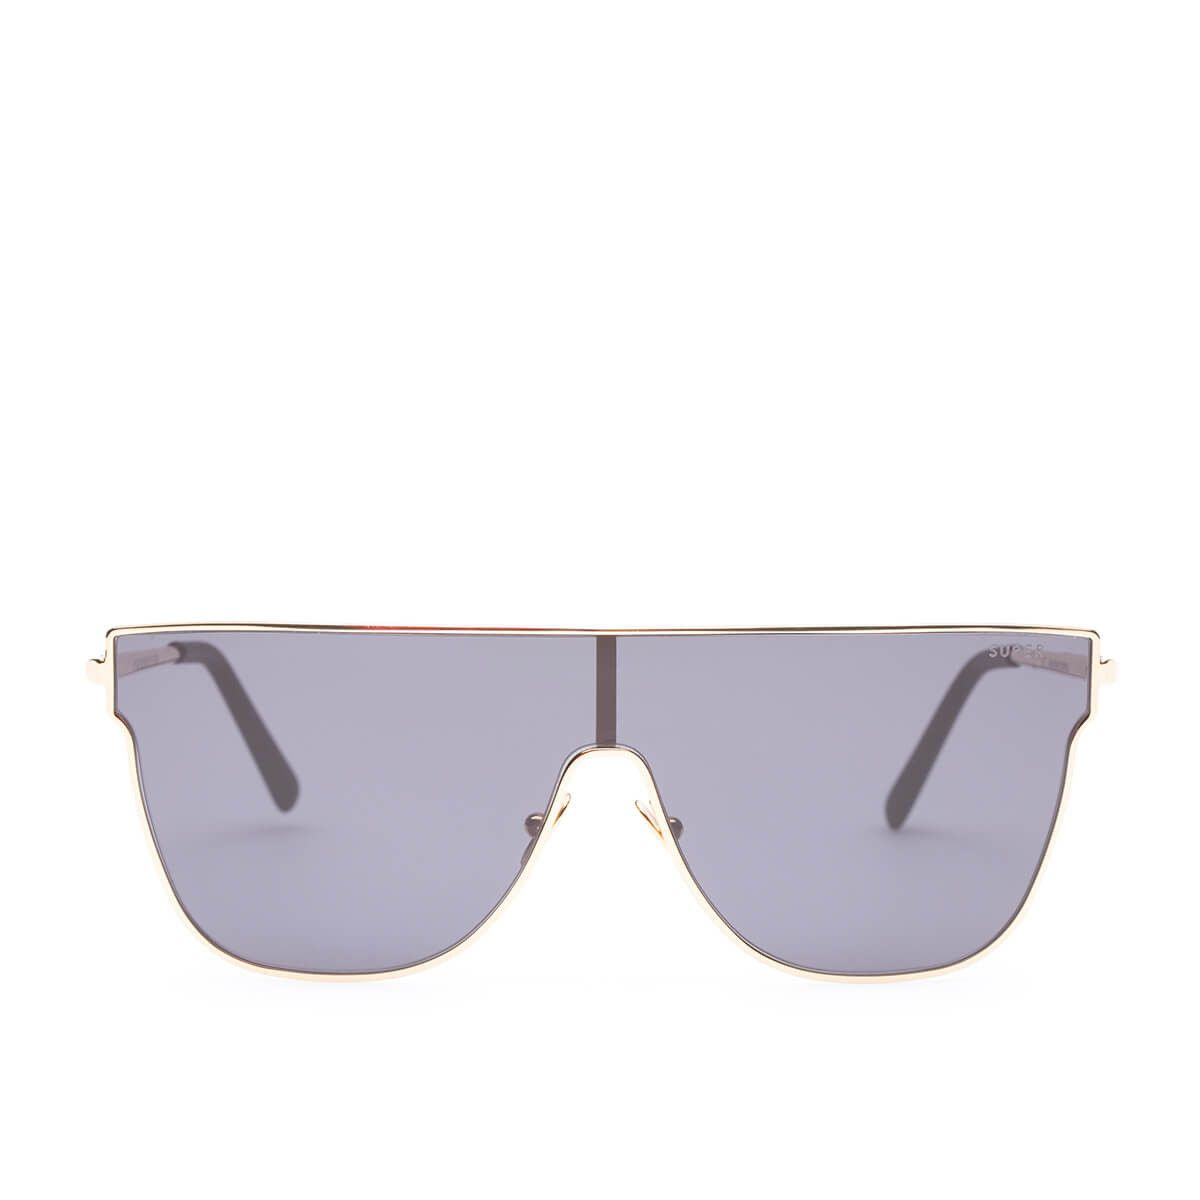 e2823660cd8 Lenz Flat Top sunglasses from Super by RETROSUPERFUTURE collection in black